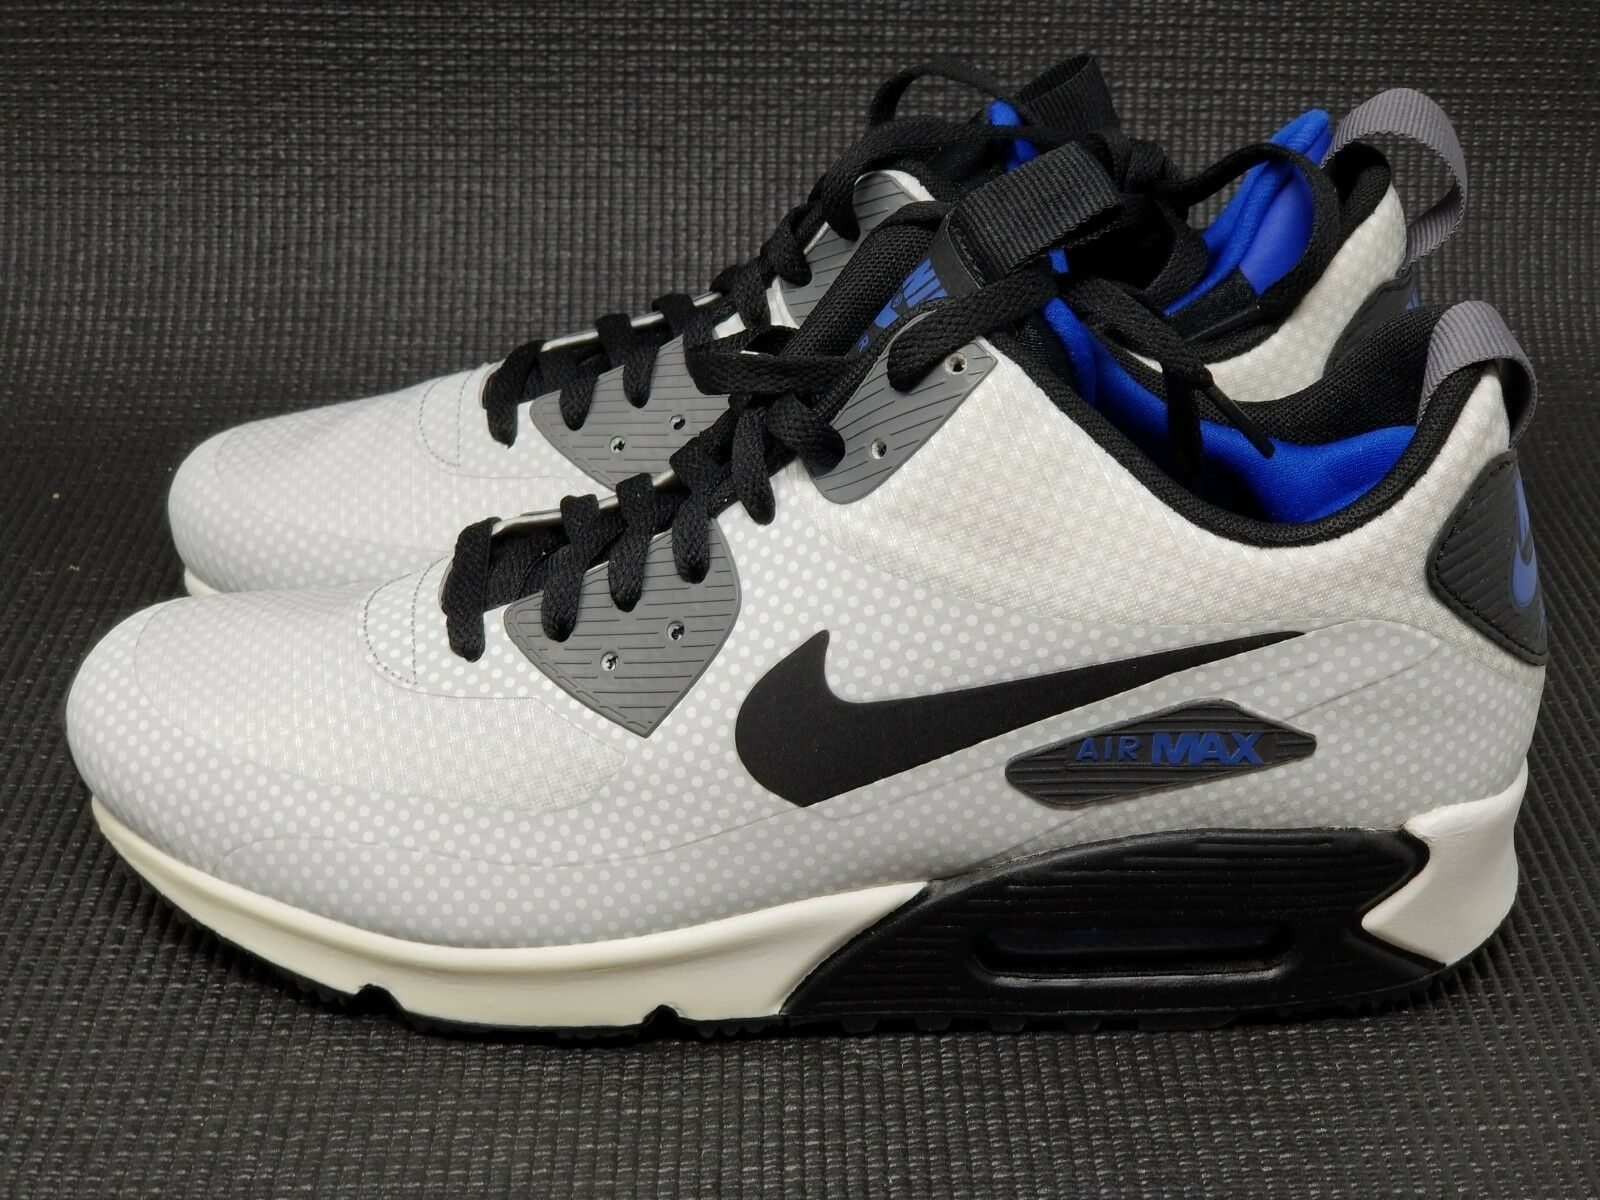 Air Max 90 Mid Winter Print - 806850-001 - Size 10